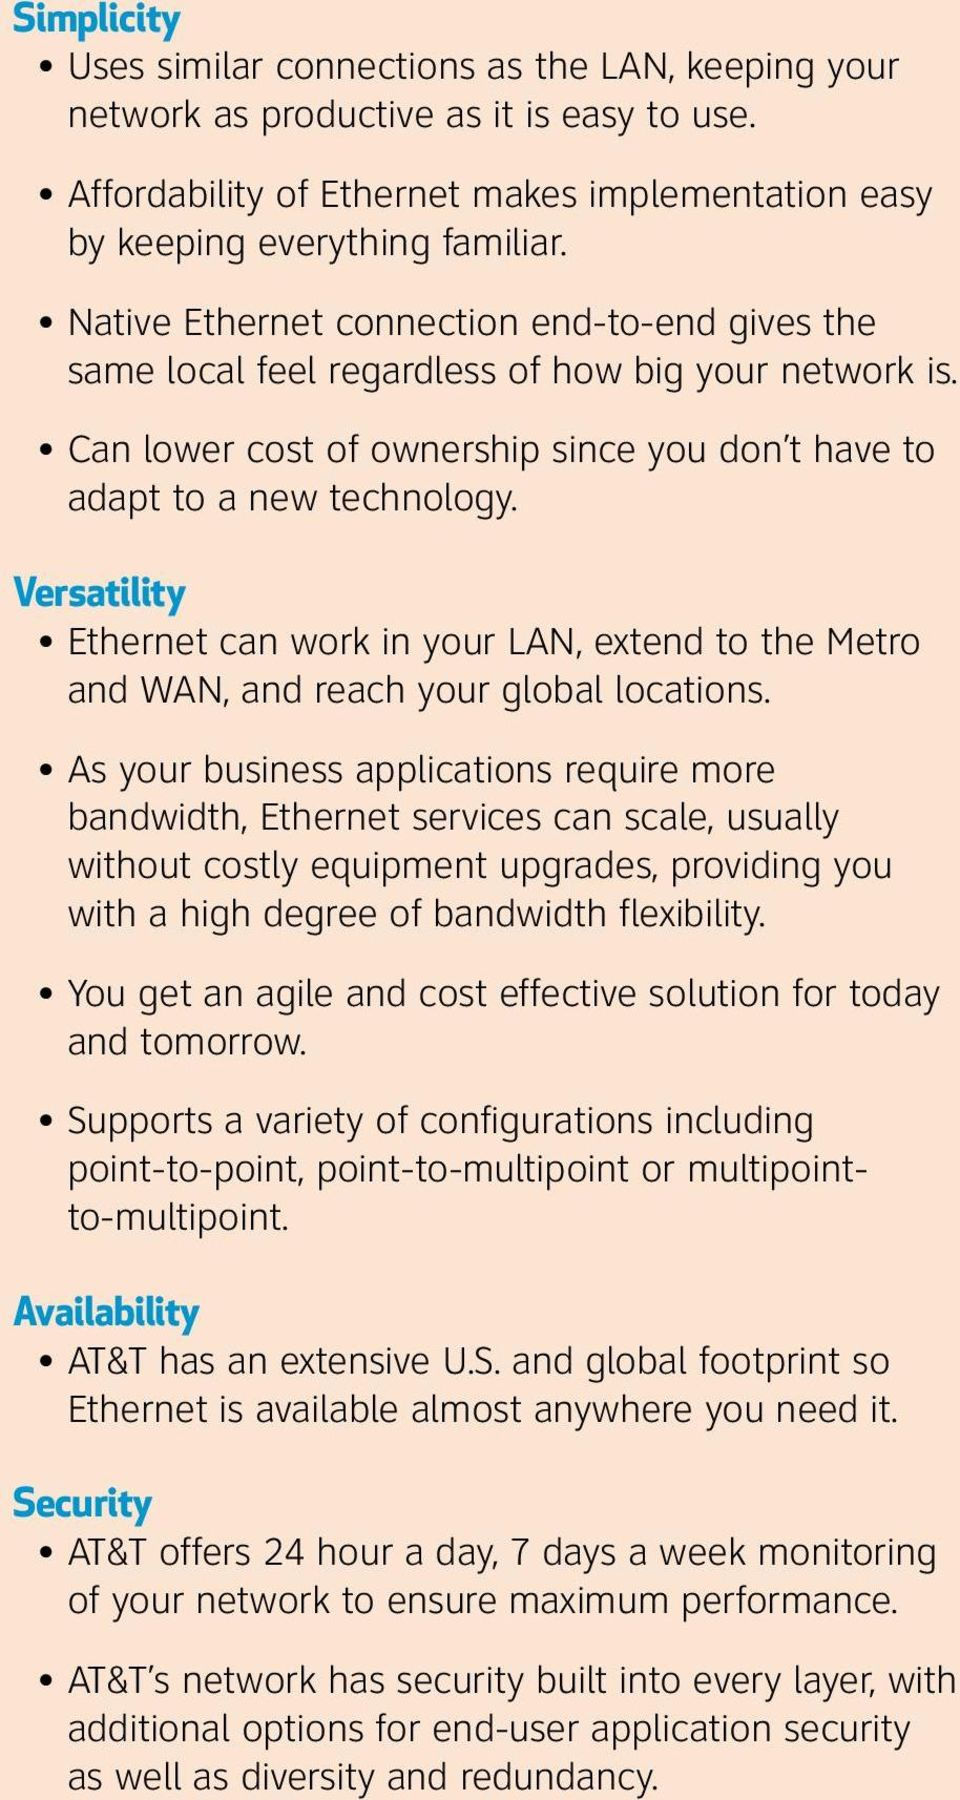 Versatility can work in your LAN, extend to the Metro and WAN, and reach your global locations.